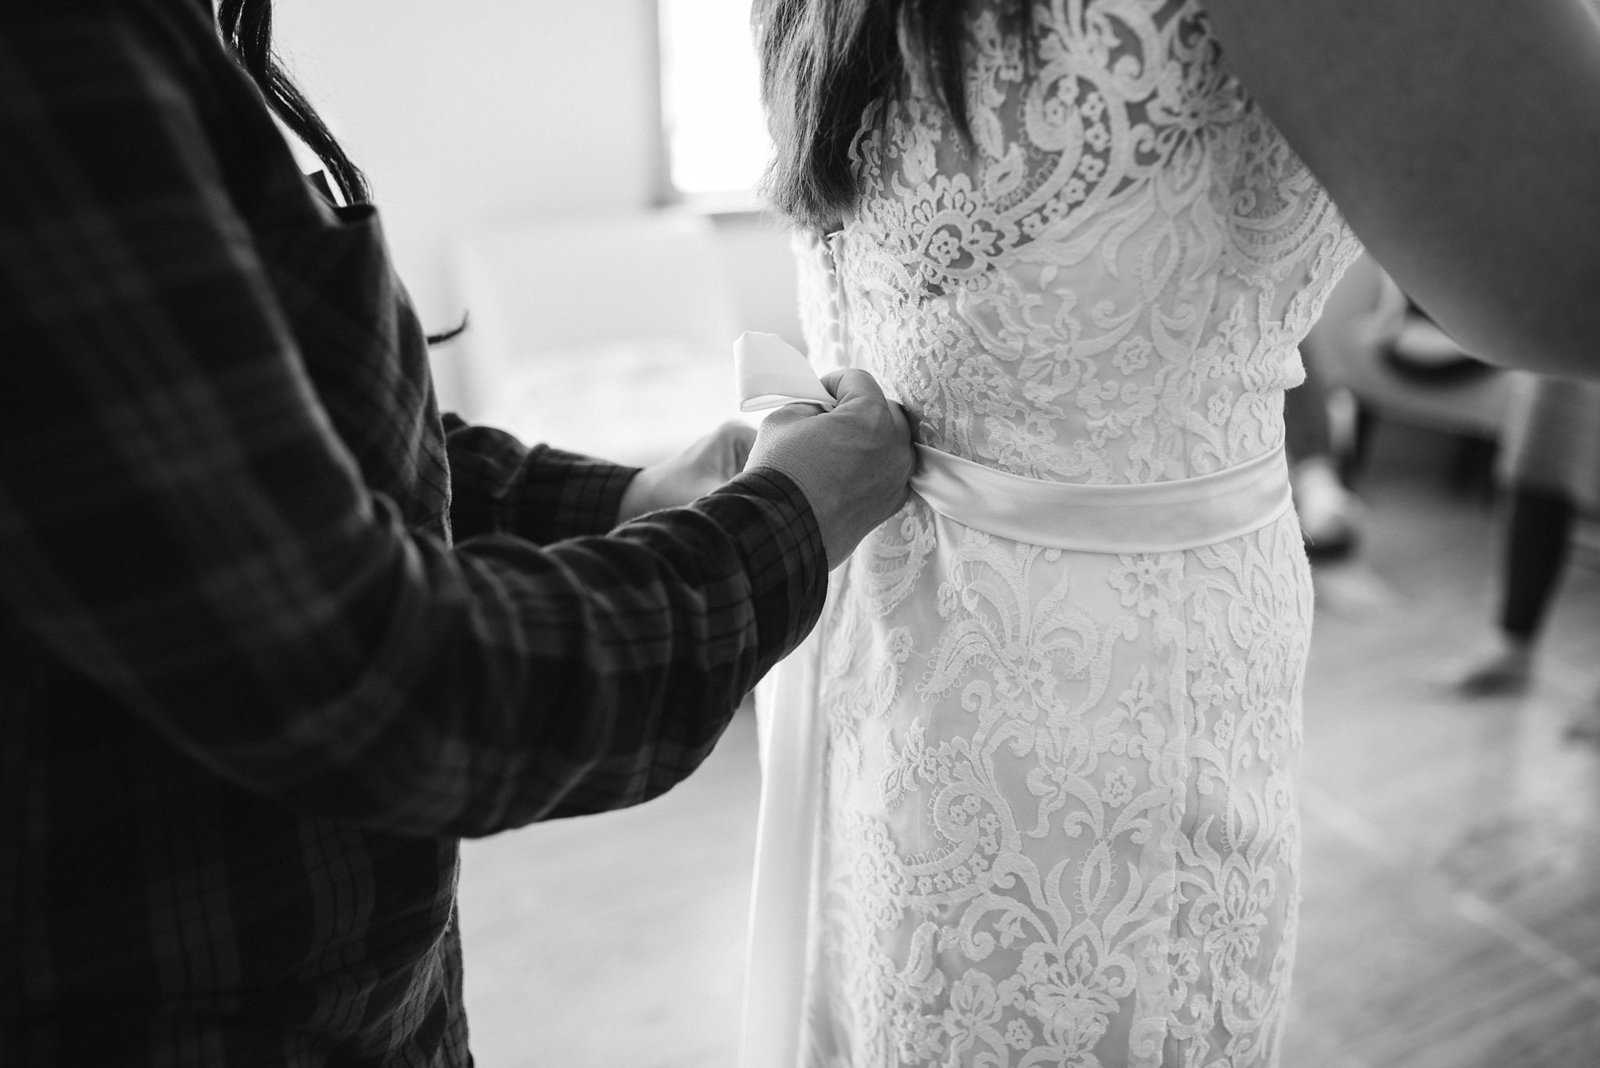 black and white wedding photography, documentary style wedding photography, Cape Cod wedding, same sex wedding, two brides